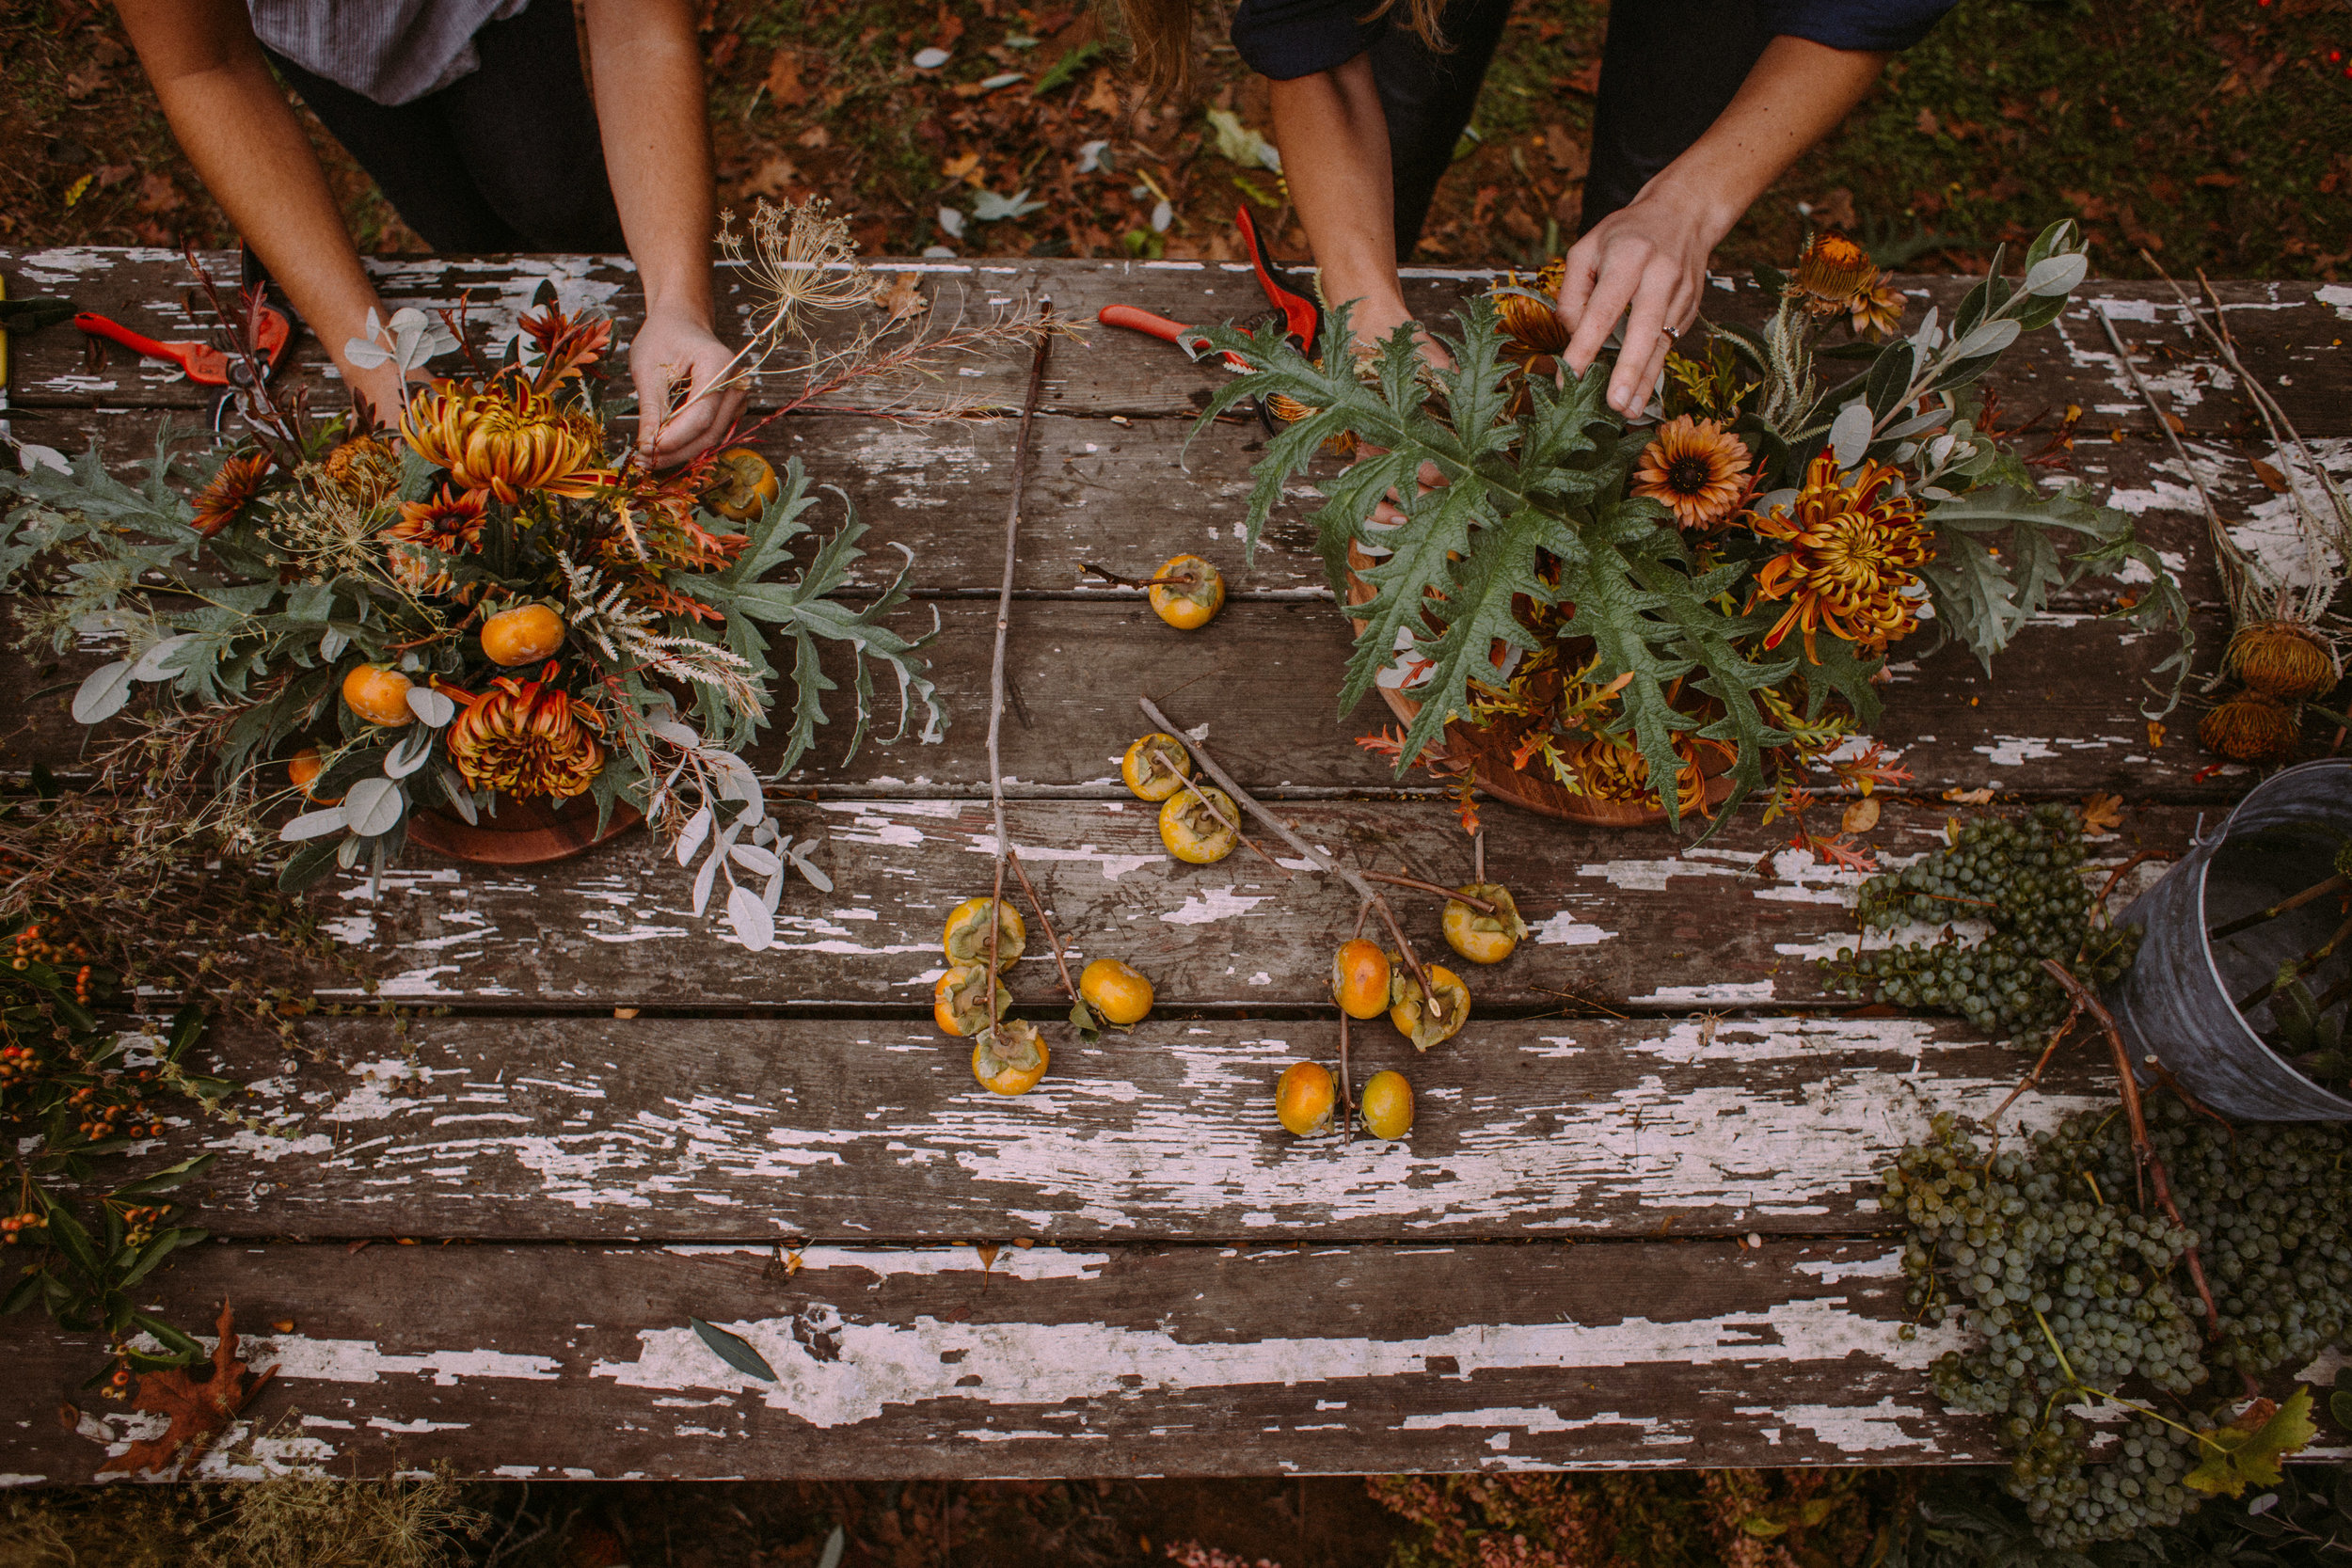 The hands of Venn Floral at work. Photographed by Collin Morrow at Rowan Farm.